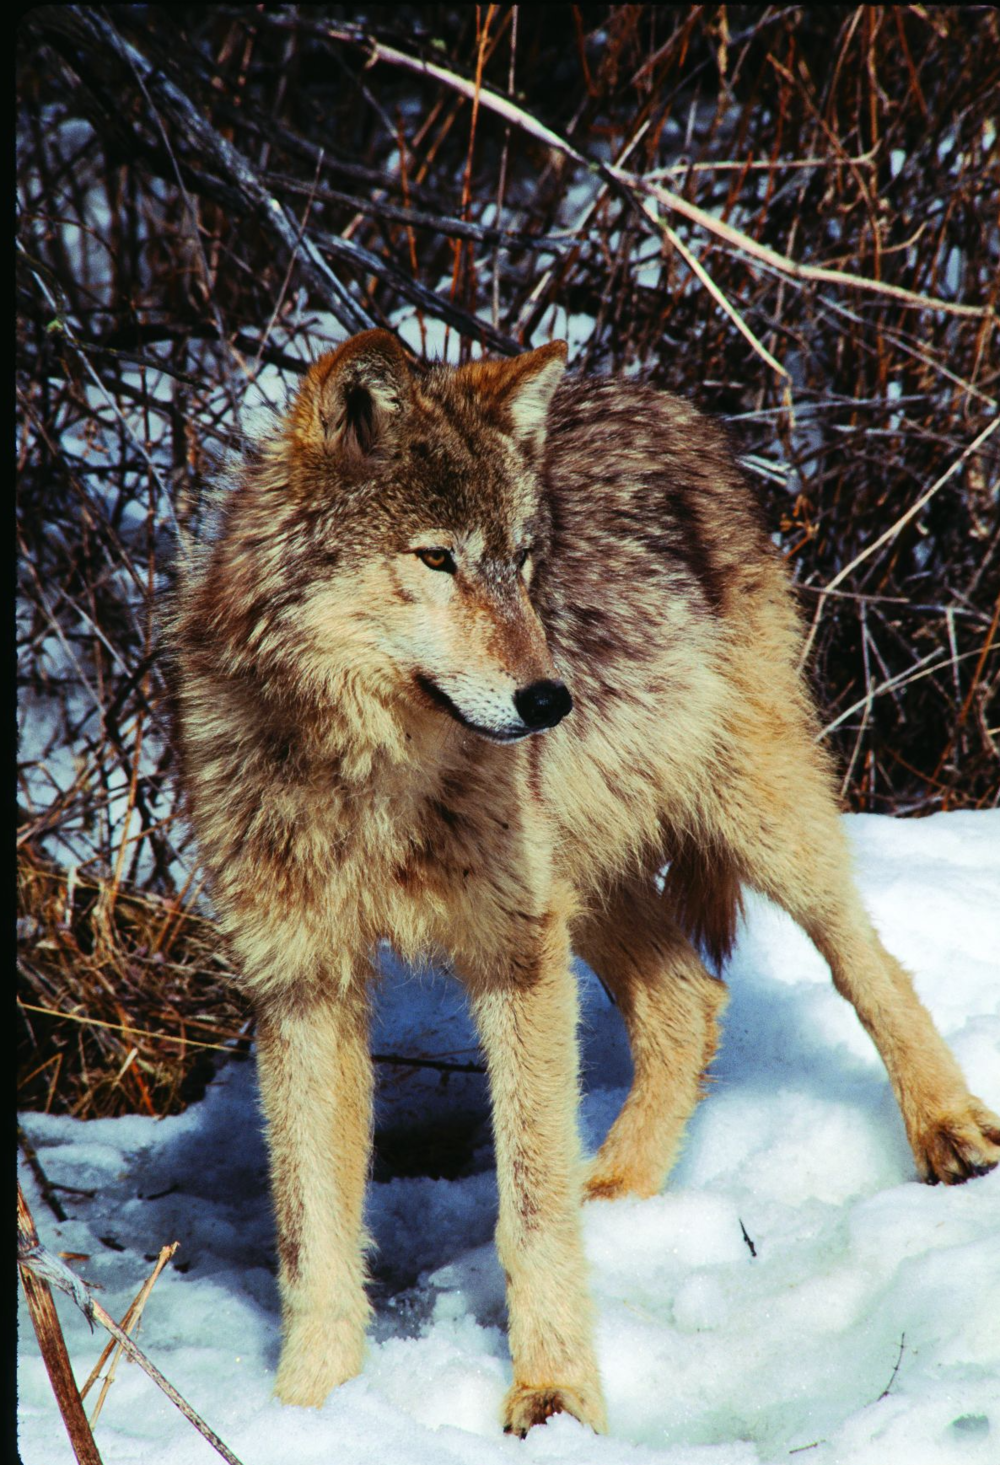 - Fig. 2. After a long absence, the gray wolf has returned to Oregon and is gradually reinhabiting wildlands, both protected and unprotected, across the state.Source: George Wuerthner. Previously appeared in Oregon Wild: Endangered Forest Wilderness (Timber Press, 2004), by the author.